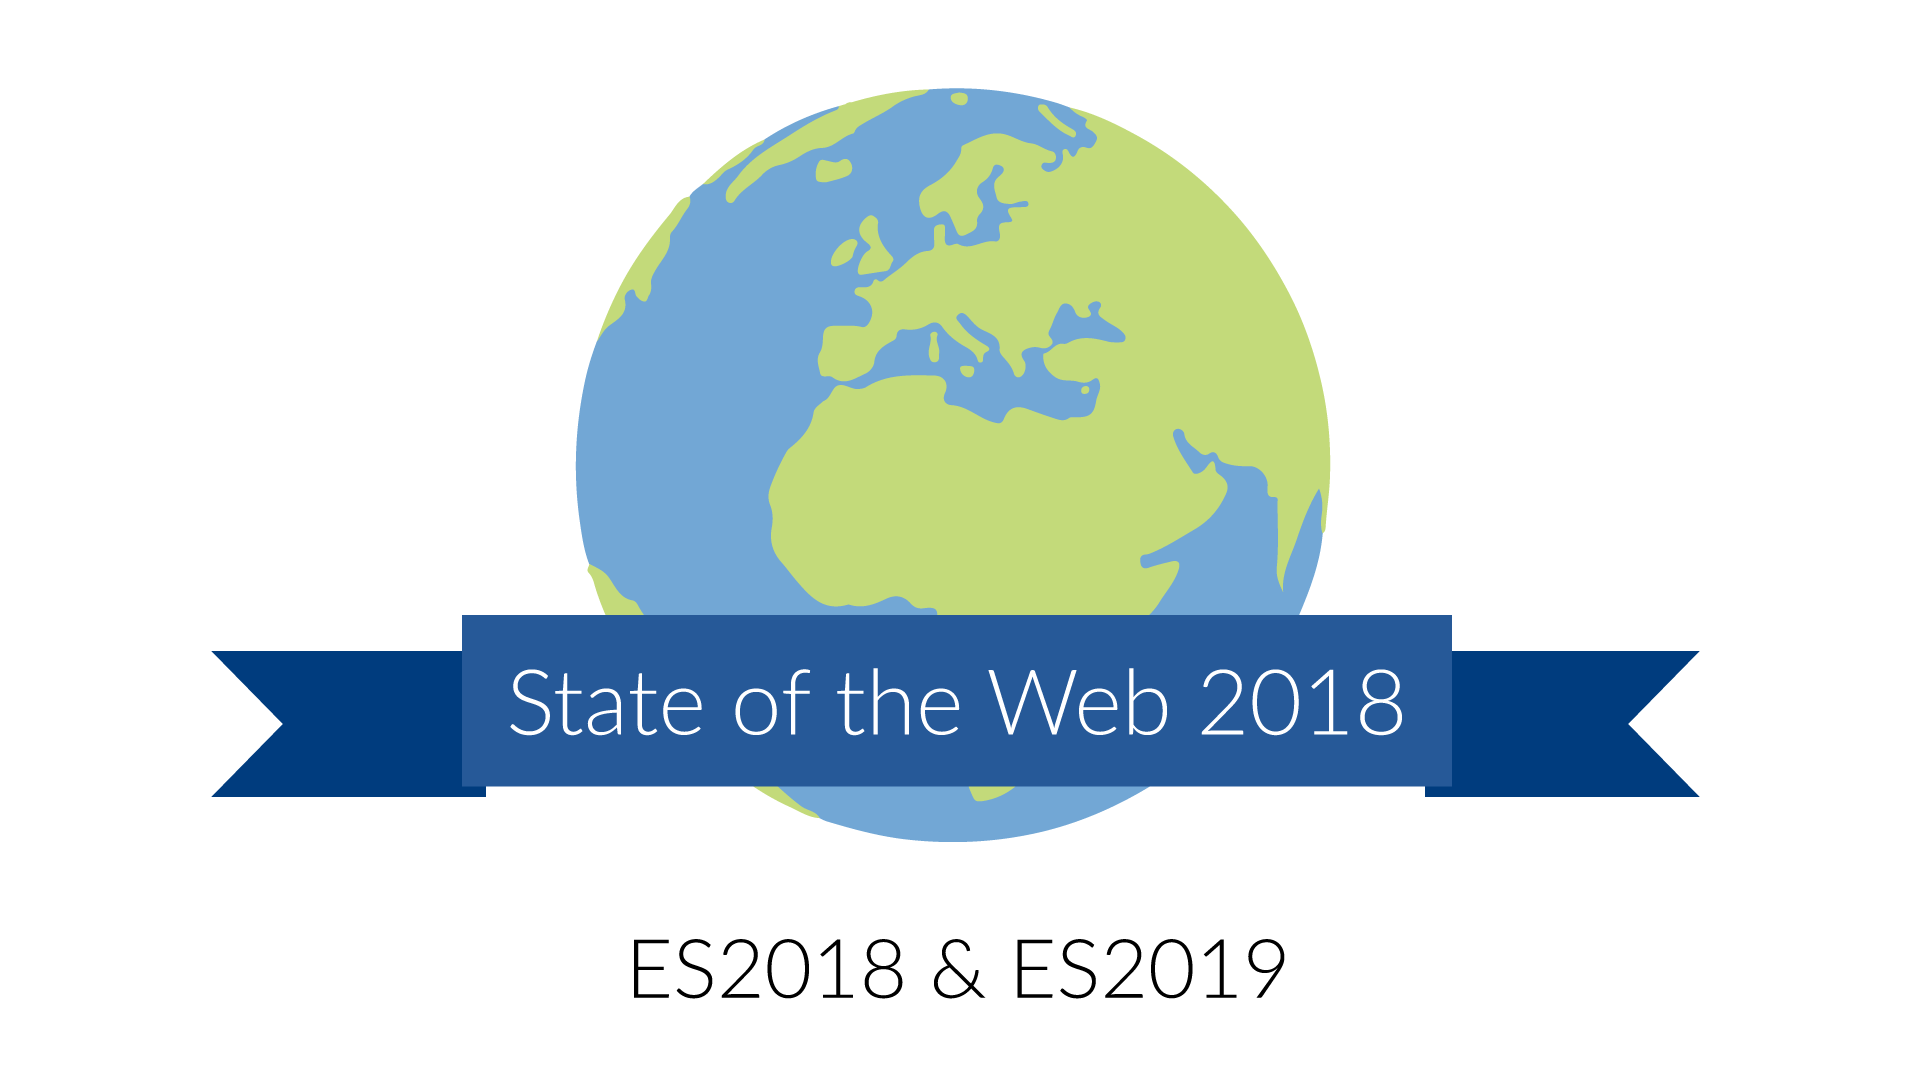 ES2018 State of the Web